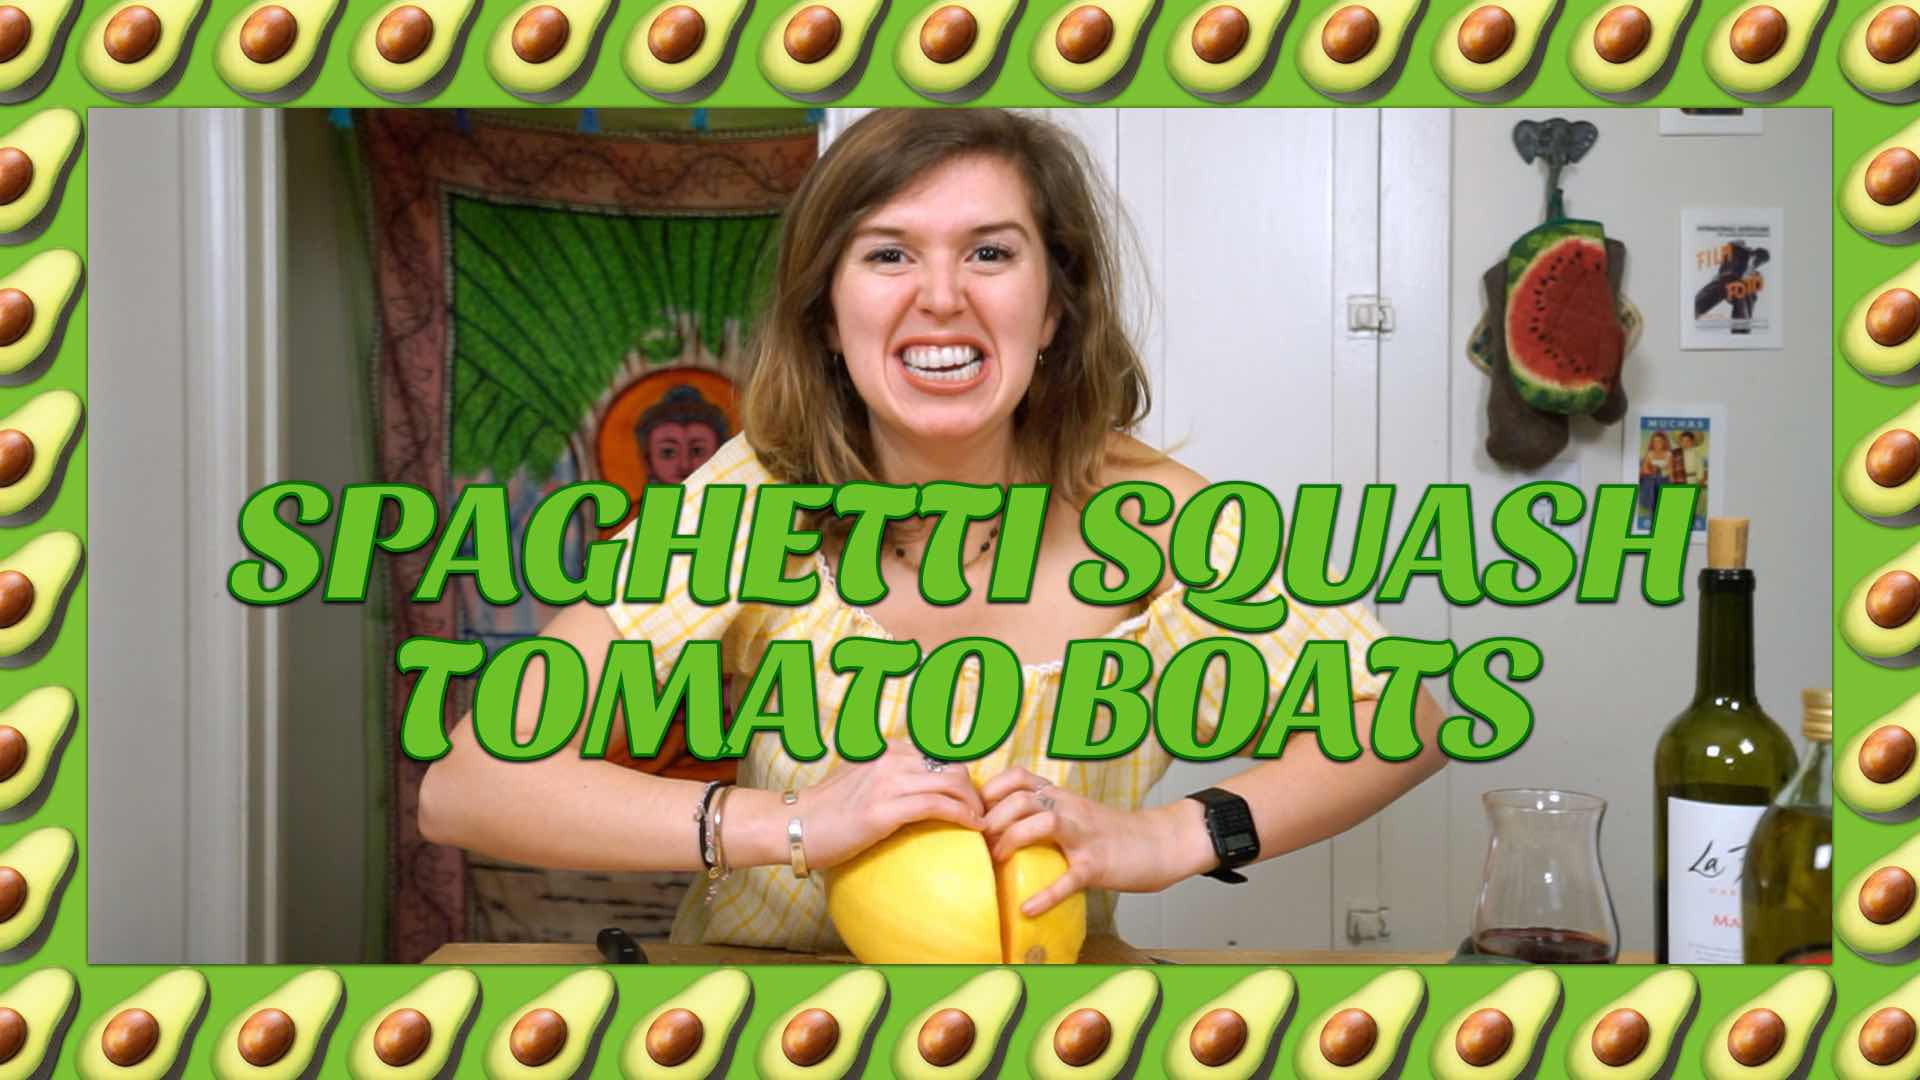 How to Make Vegan Spaghetti Squash & Tomato Sauce Boats with Avocadamama